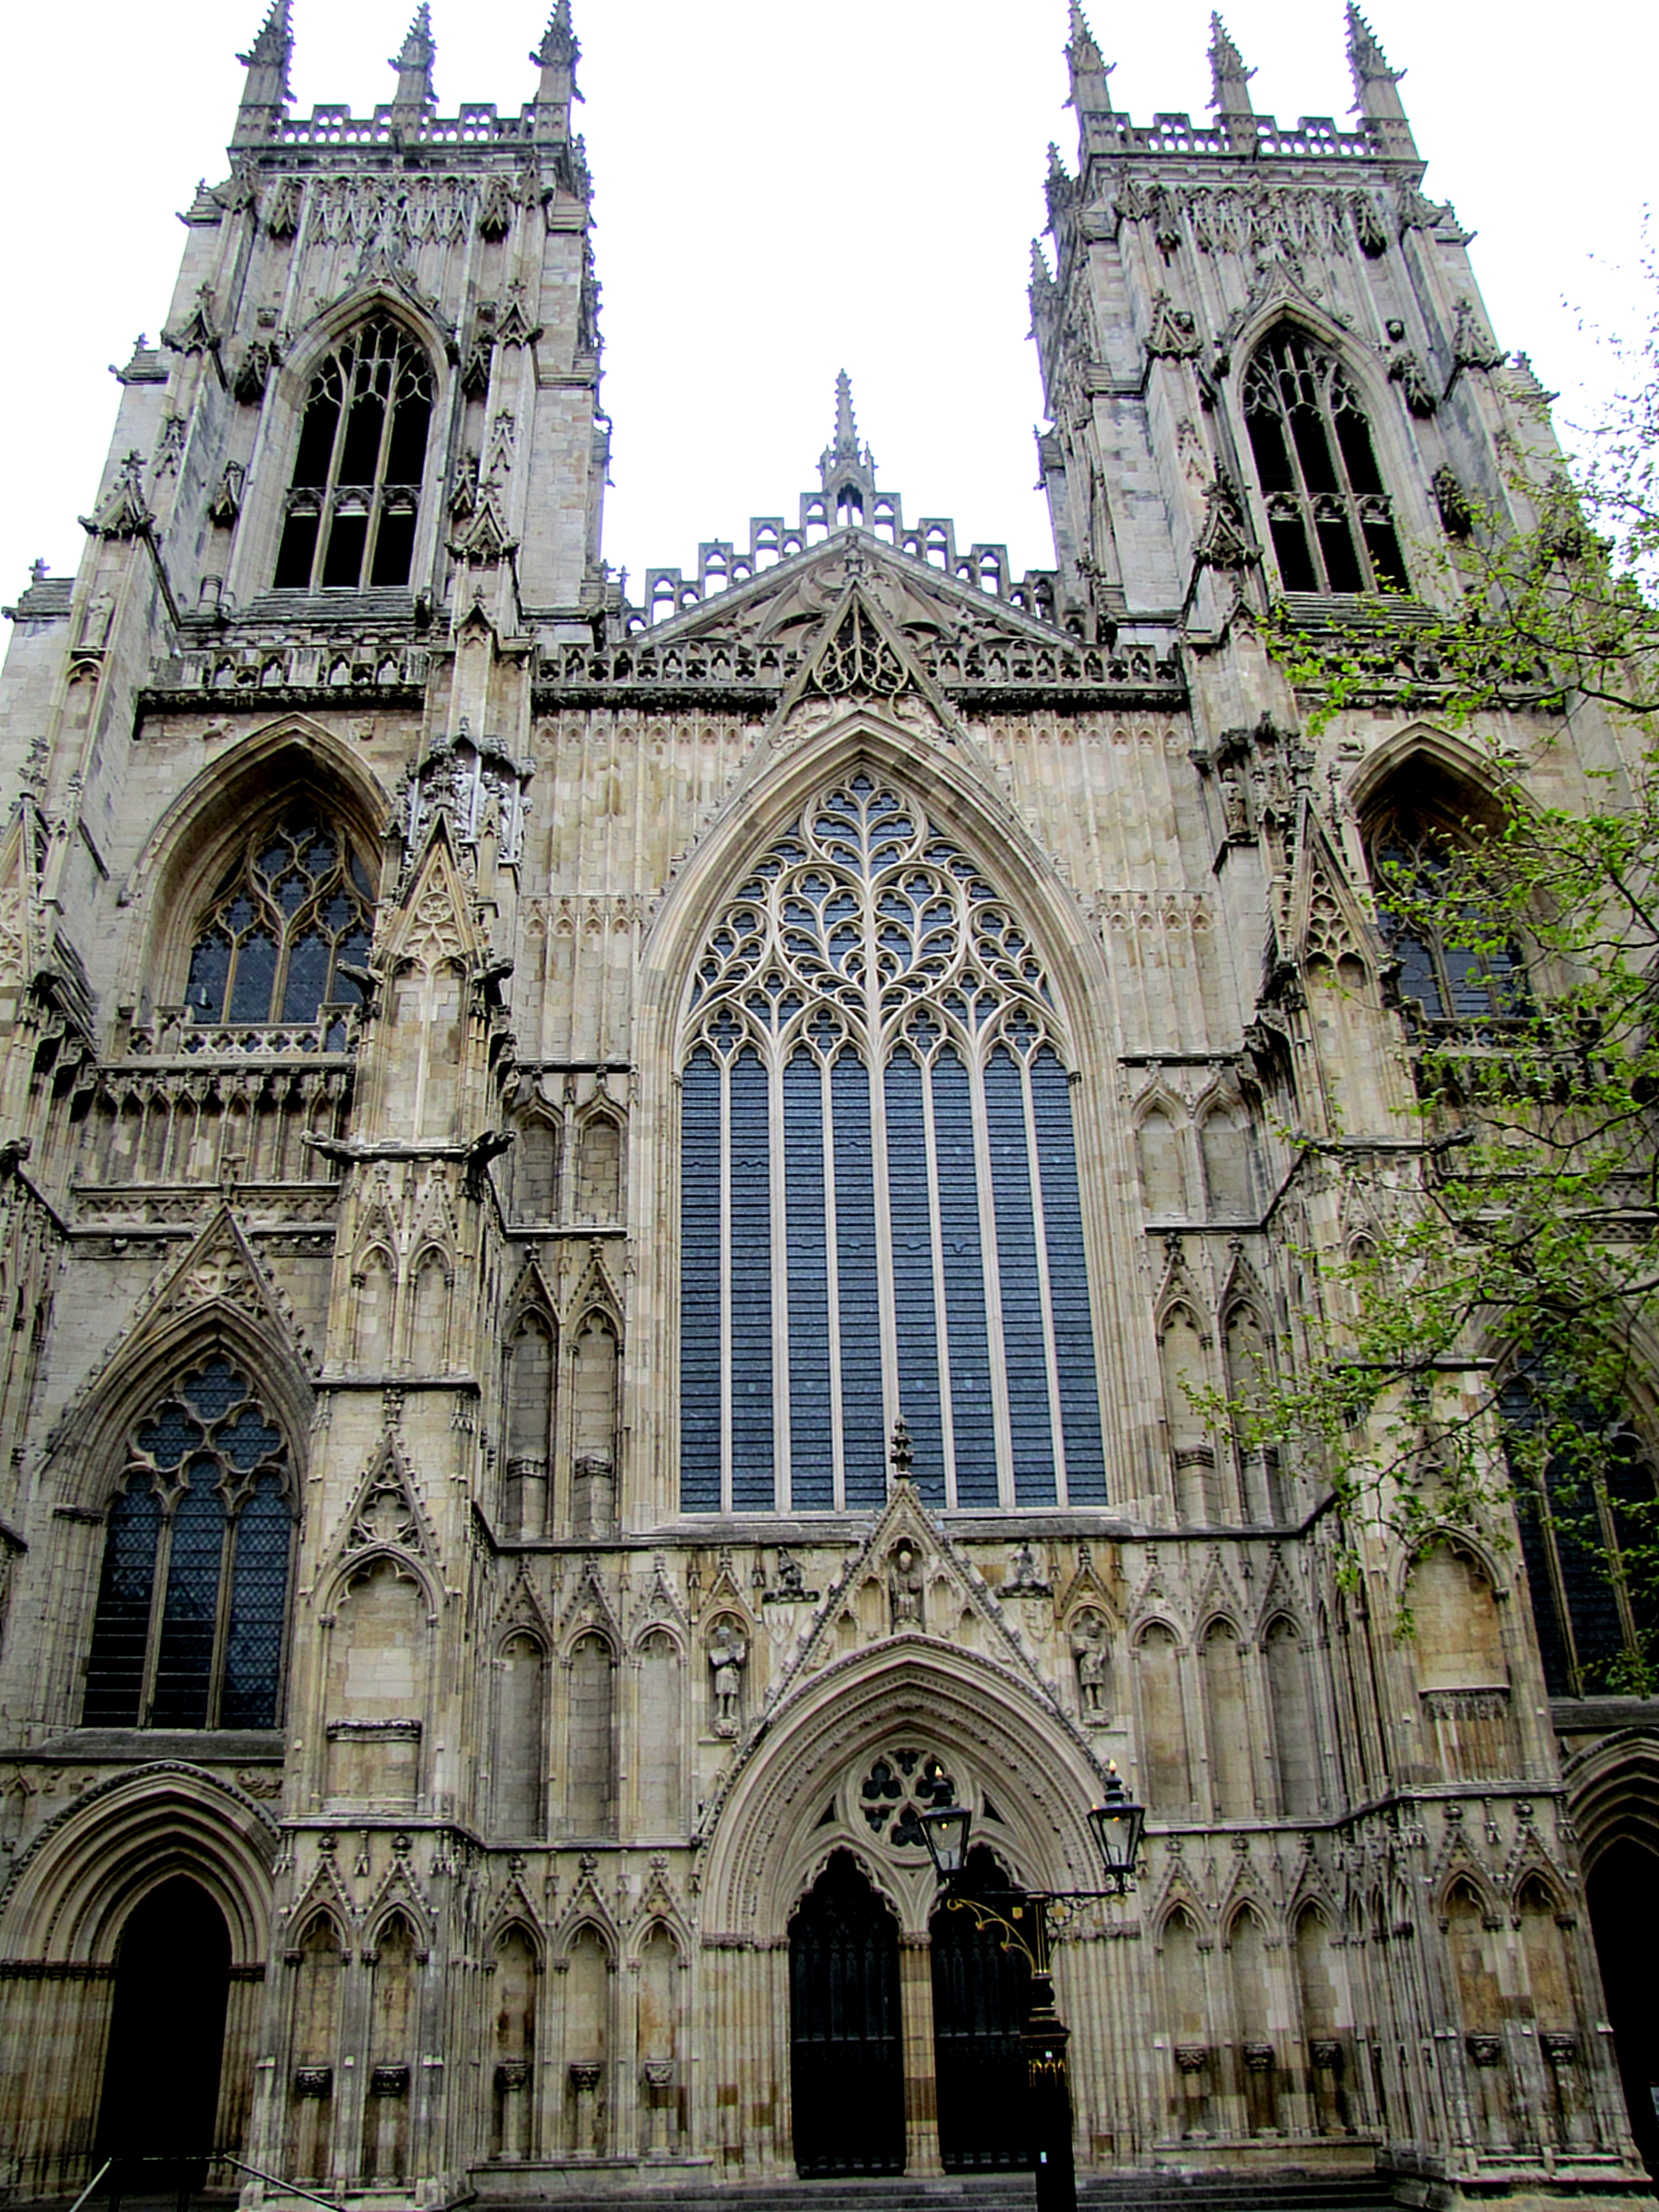 I started with York Minster. It's the largest Gothic cathedral in the UK. And it looms really well, which is kind of a requirement for Gothic architecture.